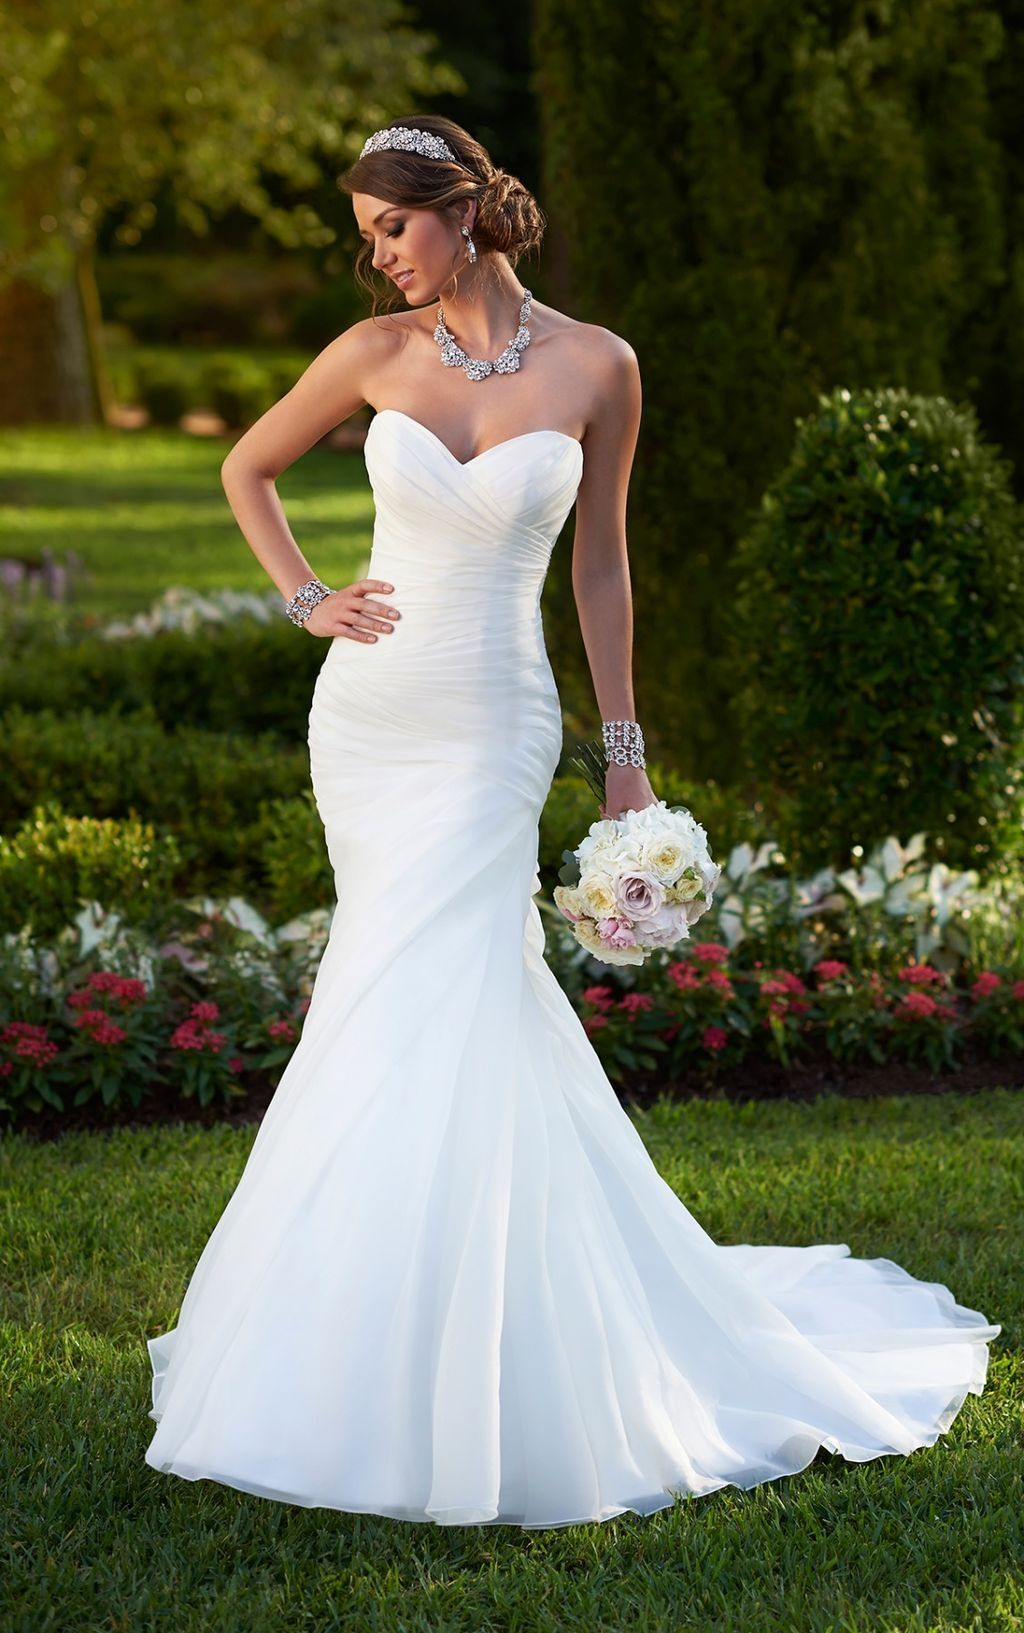 Vera wang plus size wedding dresses   Simple but Beautiful Strapless Wedding Gown Ideas Trends